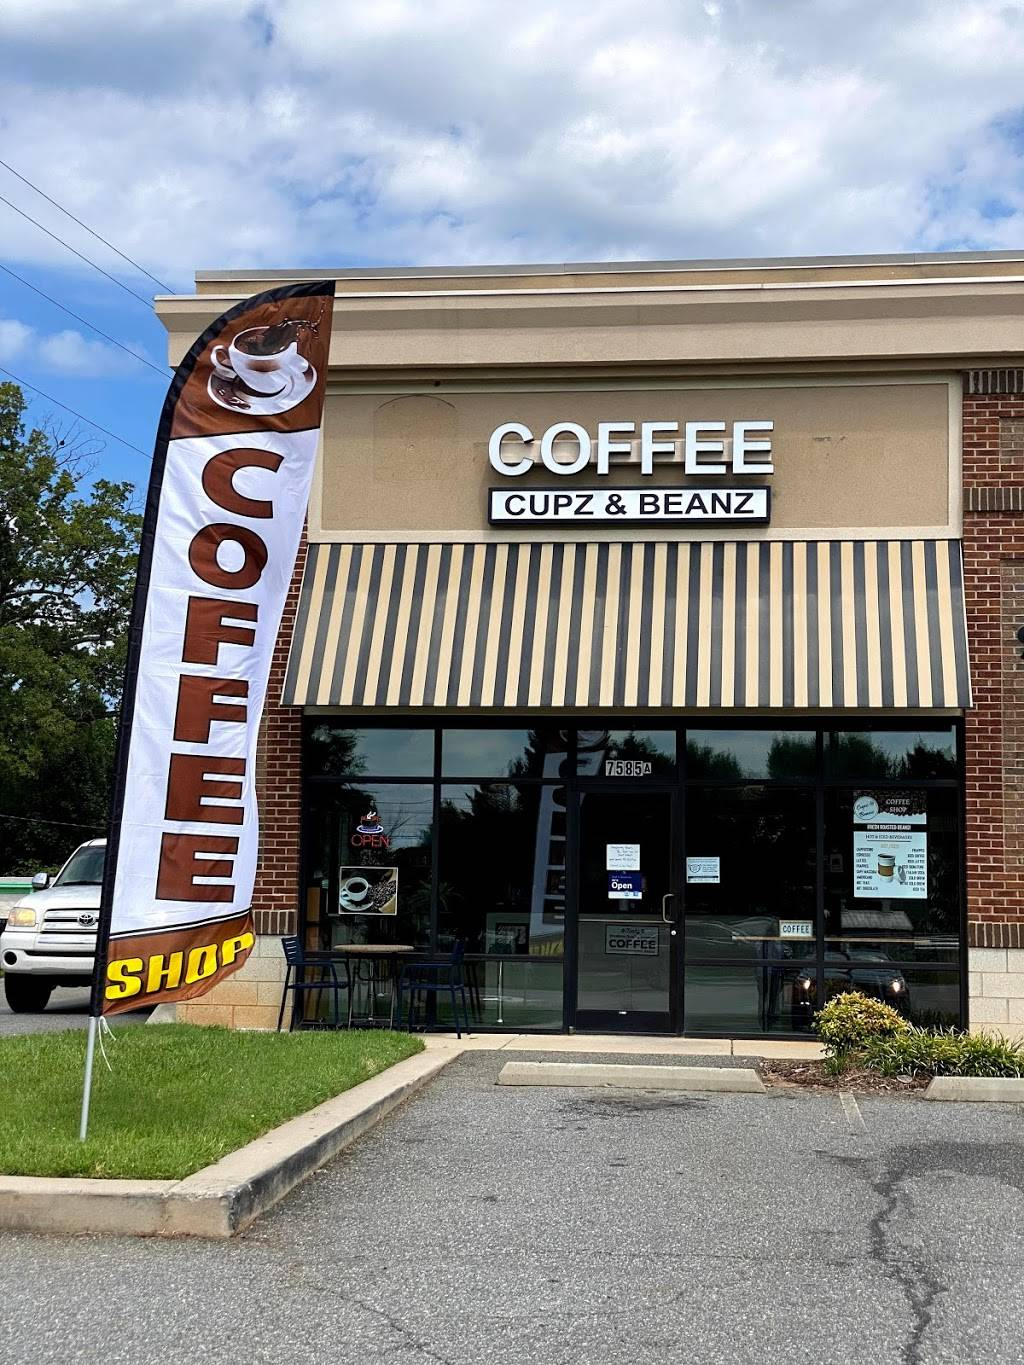 Cupz & Beanz - cafe  | Photo 1 of 9 | Address: 117 N Pilot Knob Rd Unit A, Denver, NC 28037, USA | Phone: (704) 964-6433